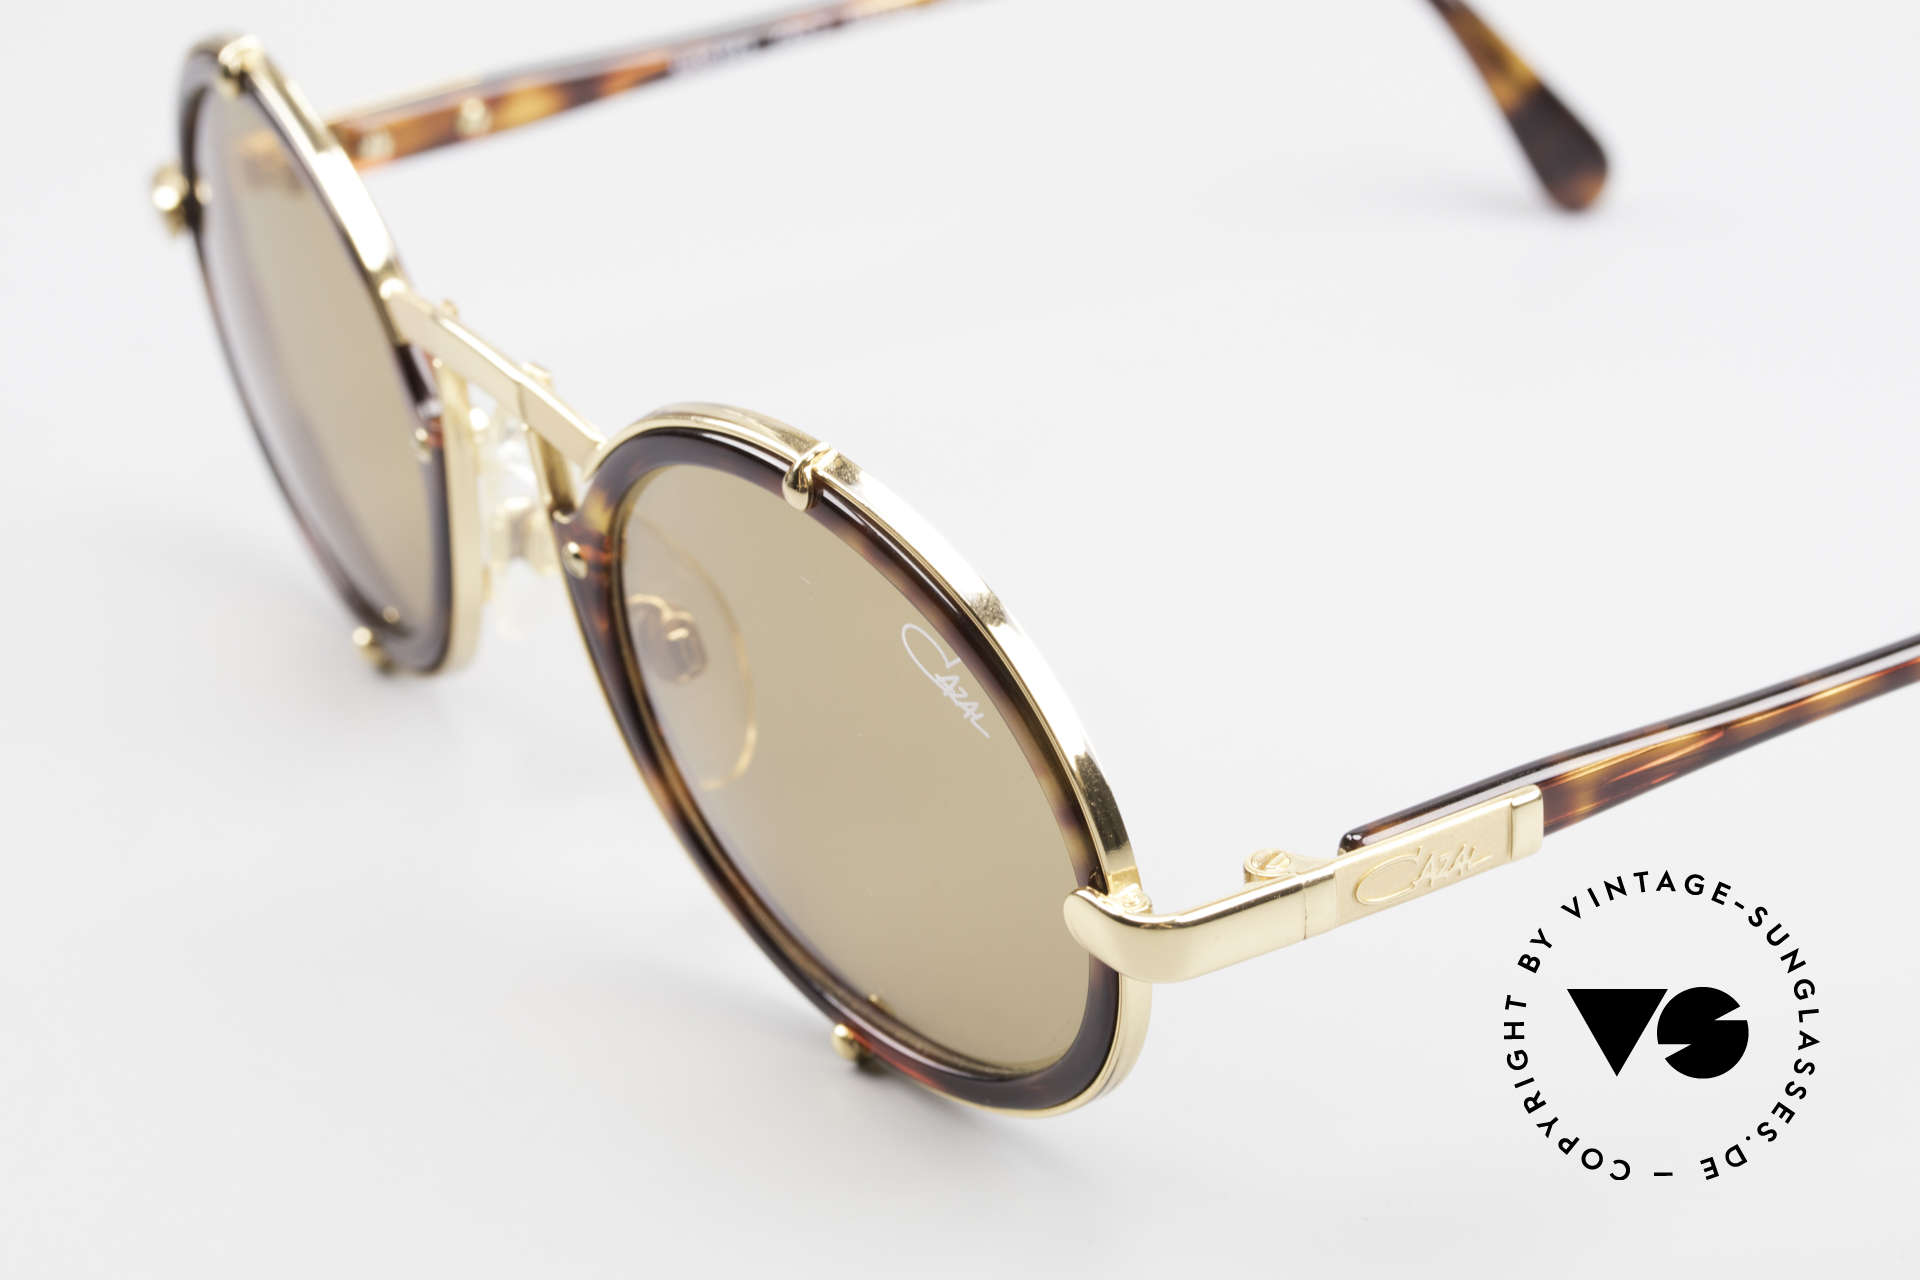 Cazal 644 Round Cazal 90's Sunglasses, unworn (like all our vintage eyewear by Cazal), Made for Men and Women